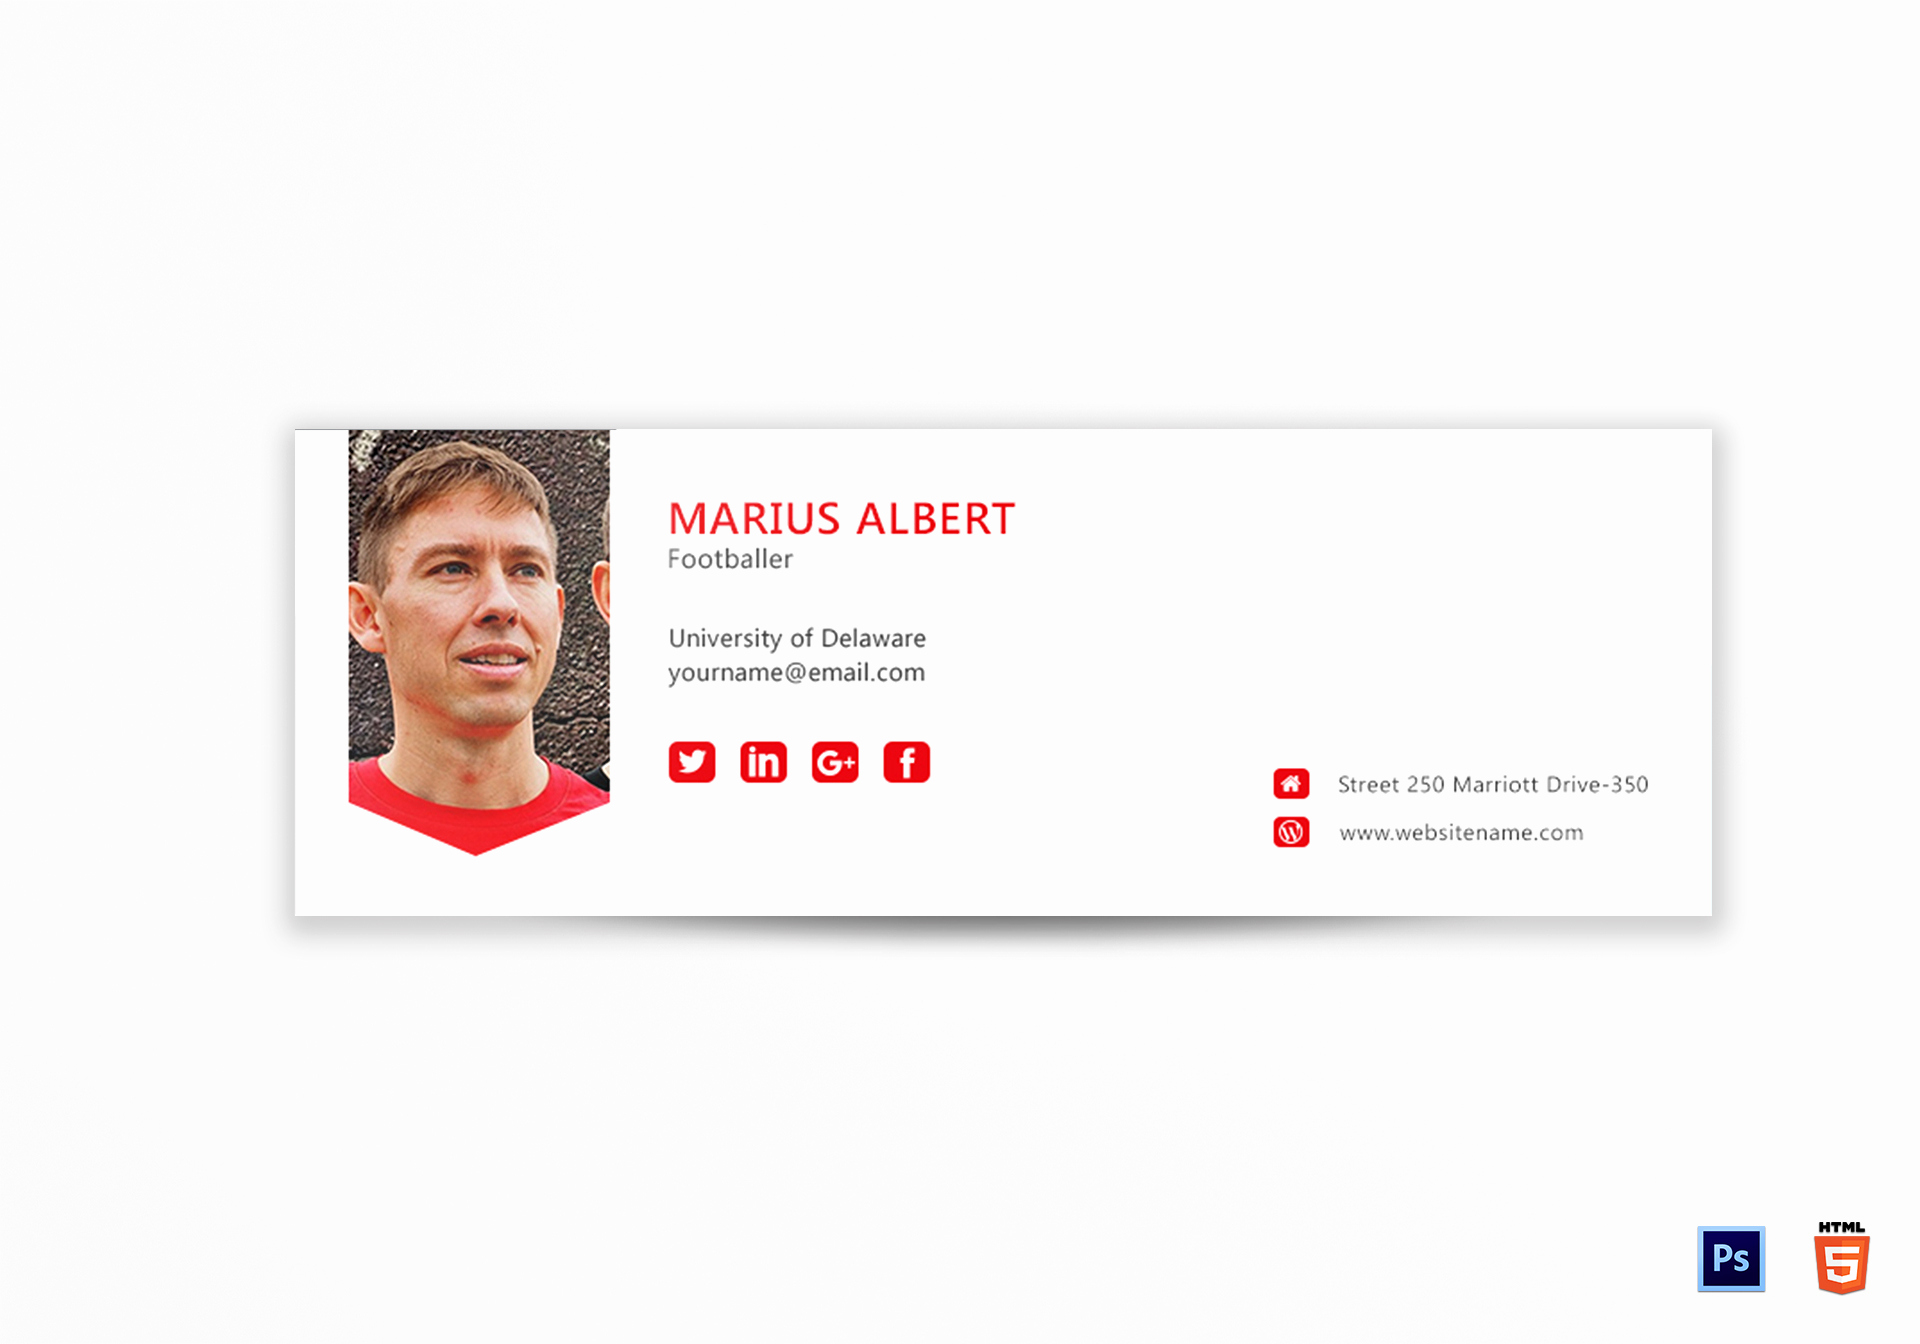 Professional Email Signature Student New Professional Email Signature Design Template In Psd HTML